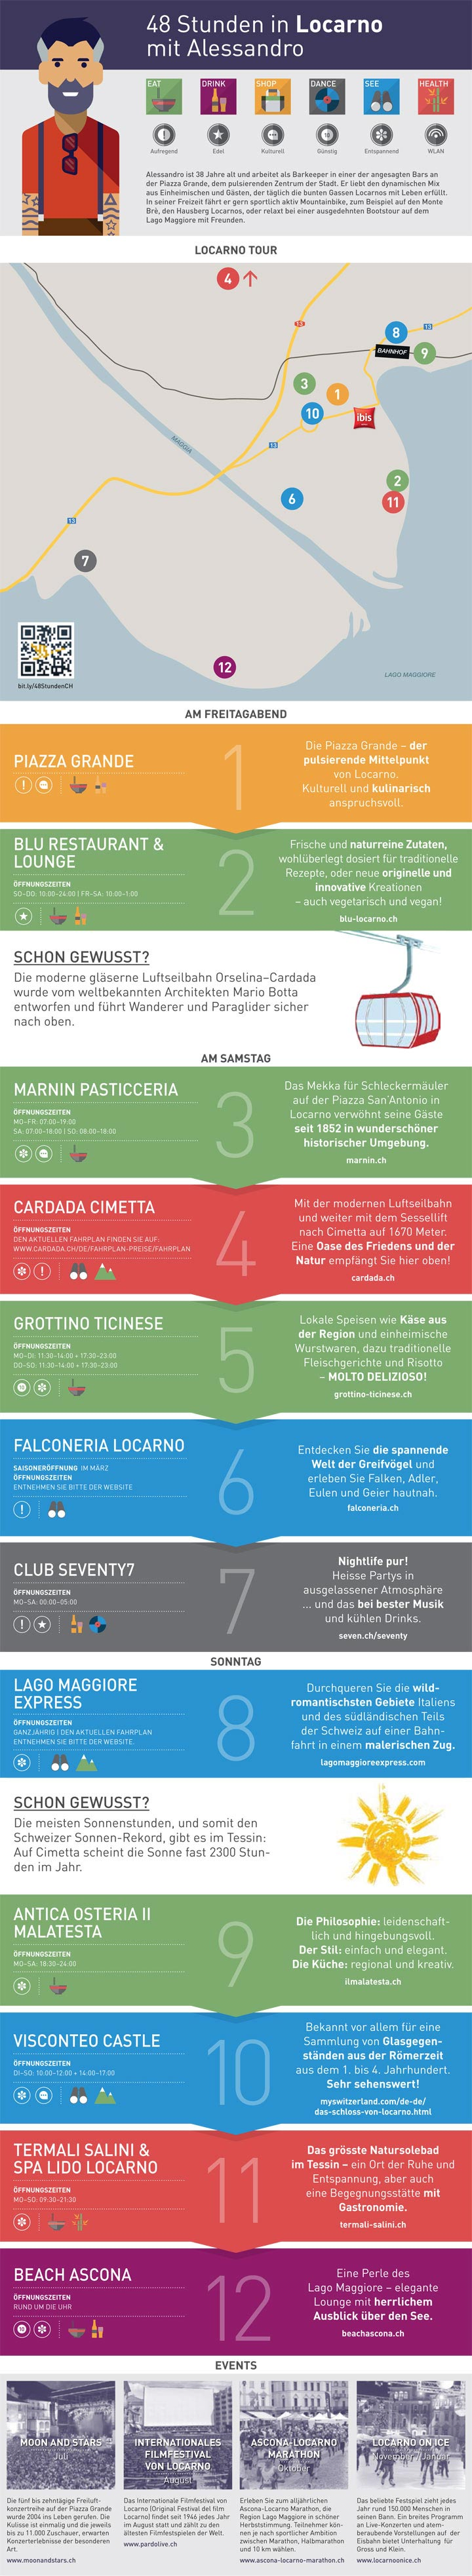 Locarno infographik by Accorhotels.com